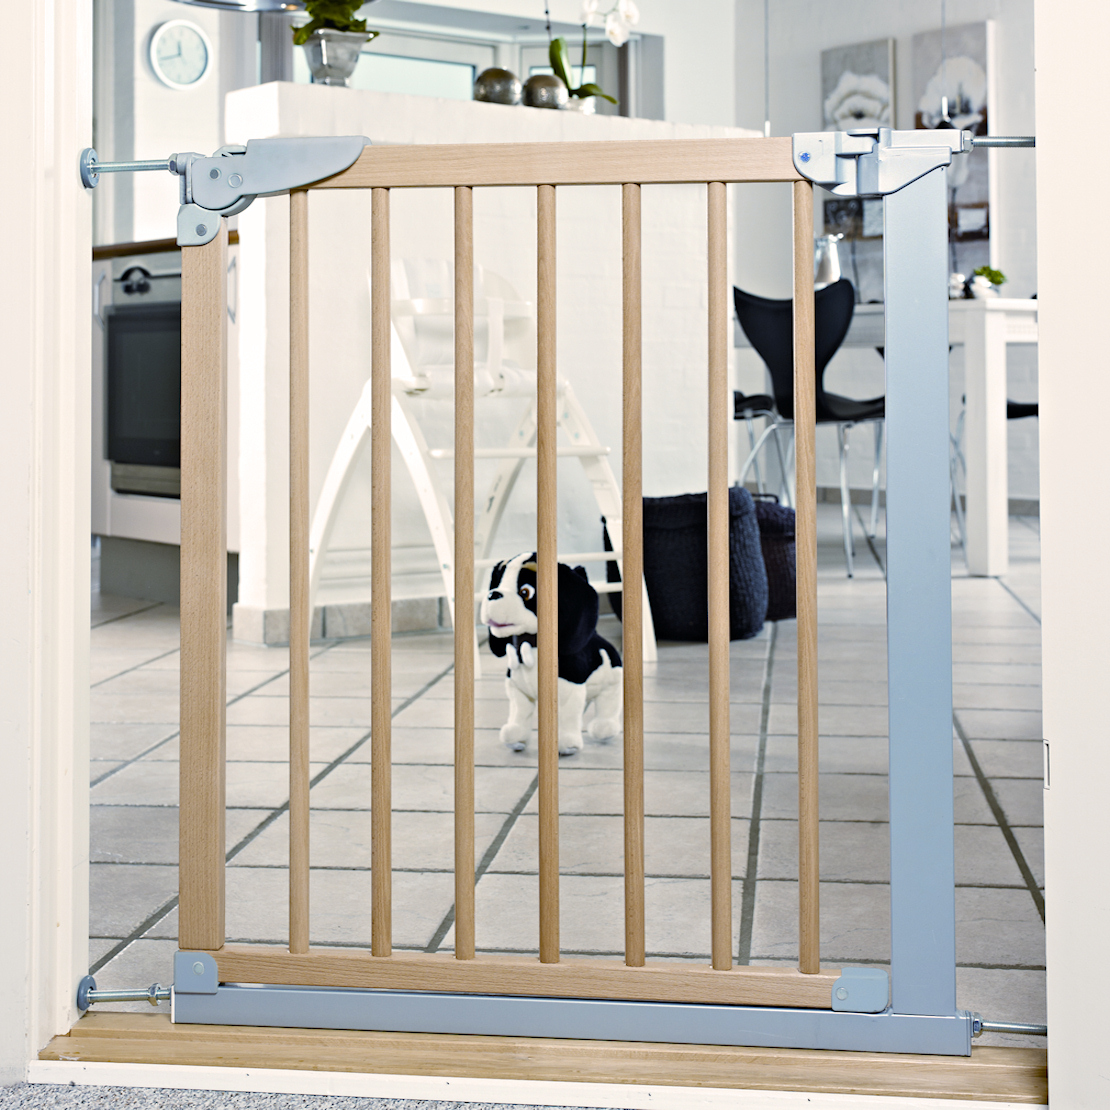 Safety Gates Fireguards Room Dividers Monitors SALE Online4baby